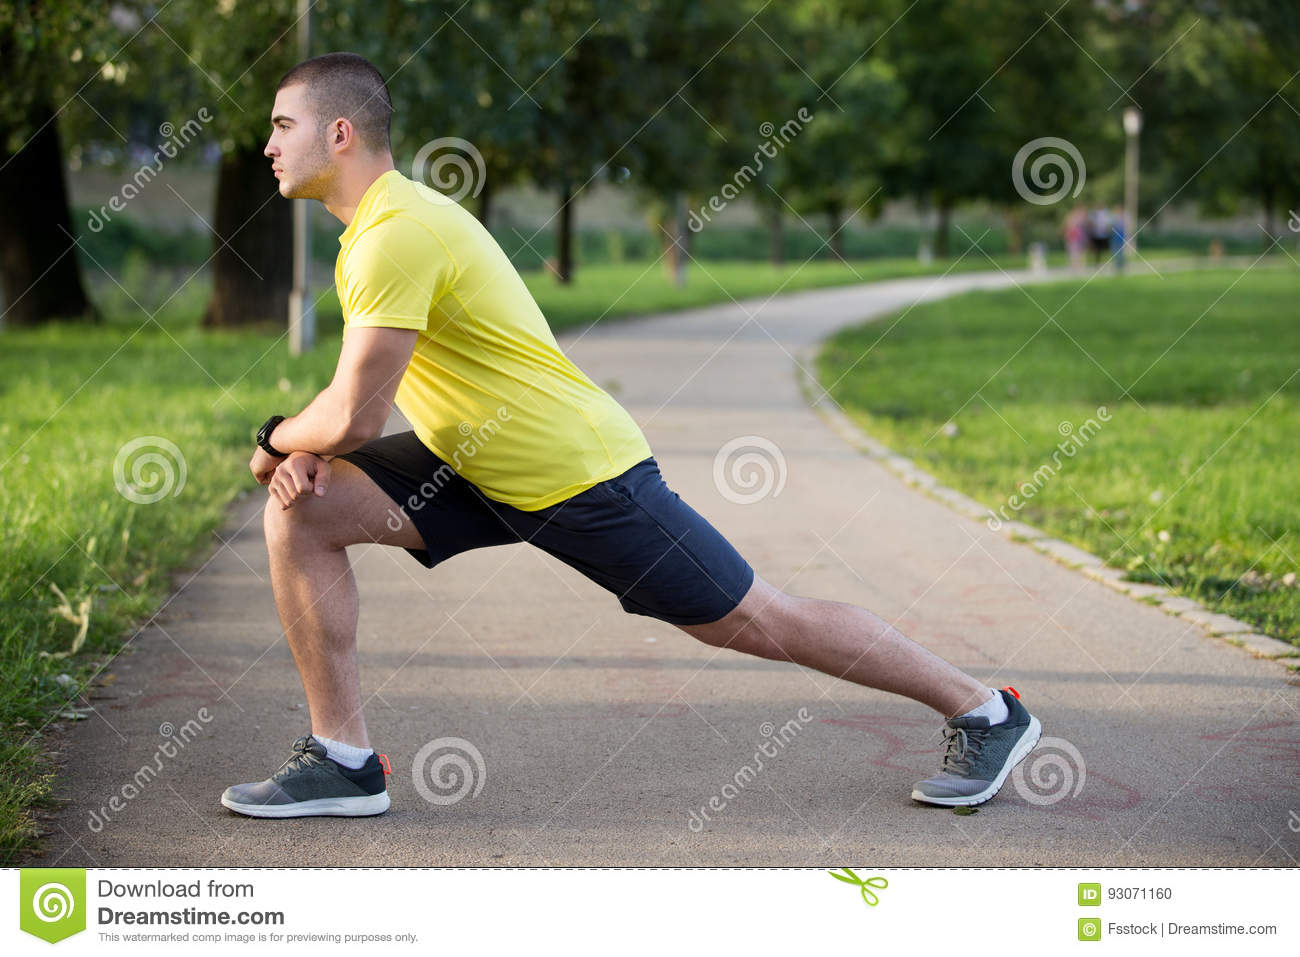 Fitness man stretching arm shoulder before outdoor workout. Sporty male athlete in an urban park warming up.